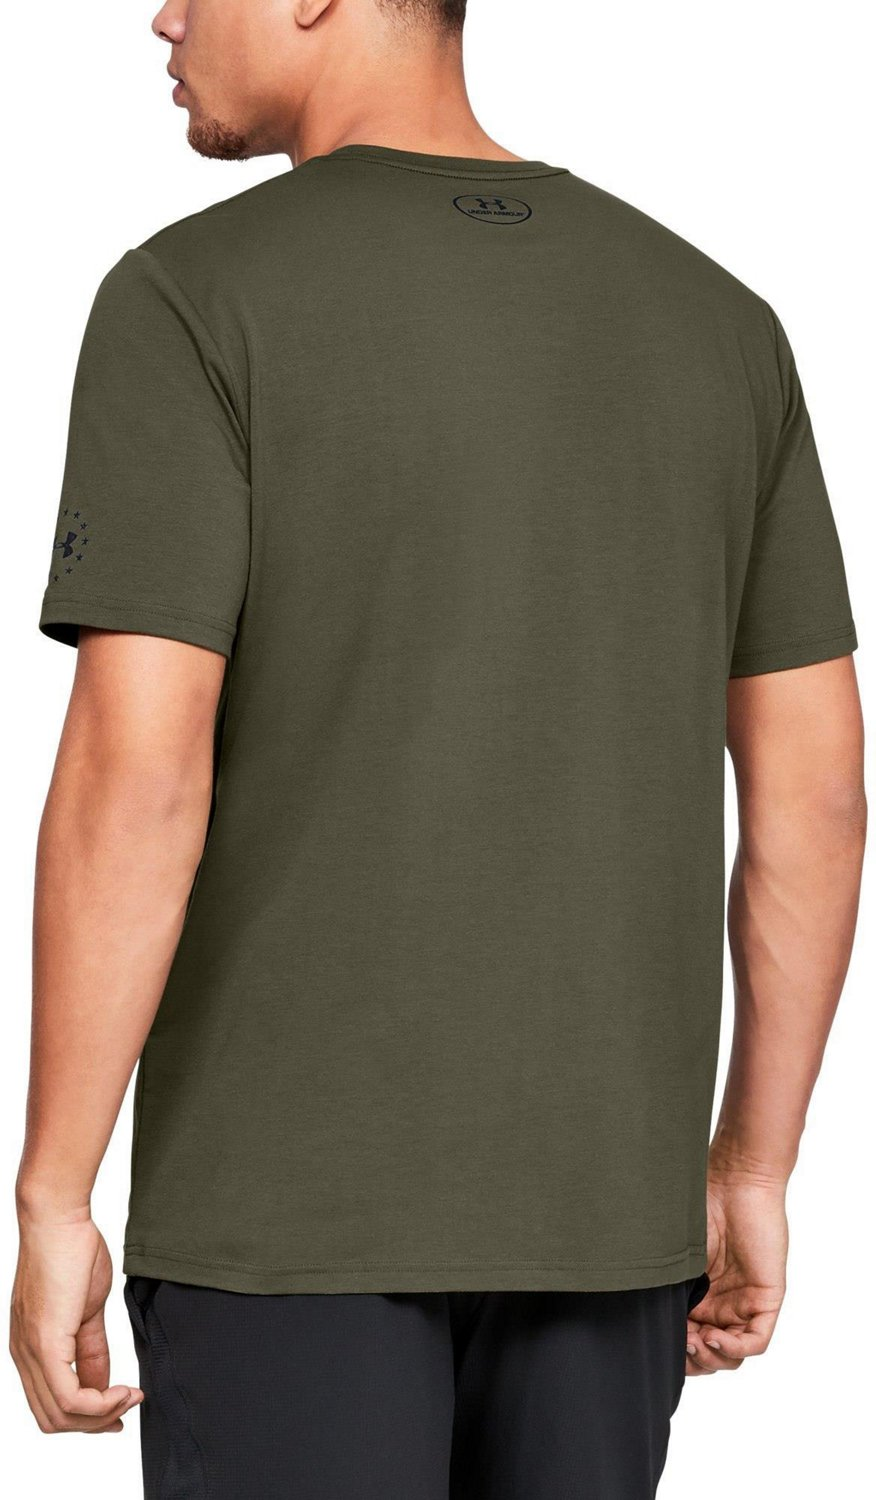 Under Armour Men's Freedom US Eagle T-shirt - view number 5